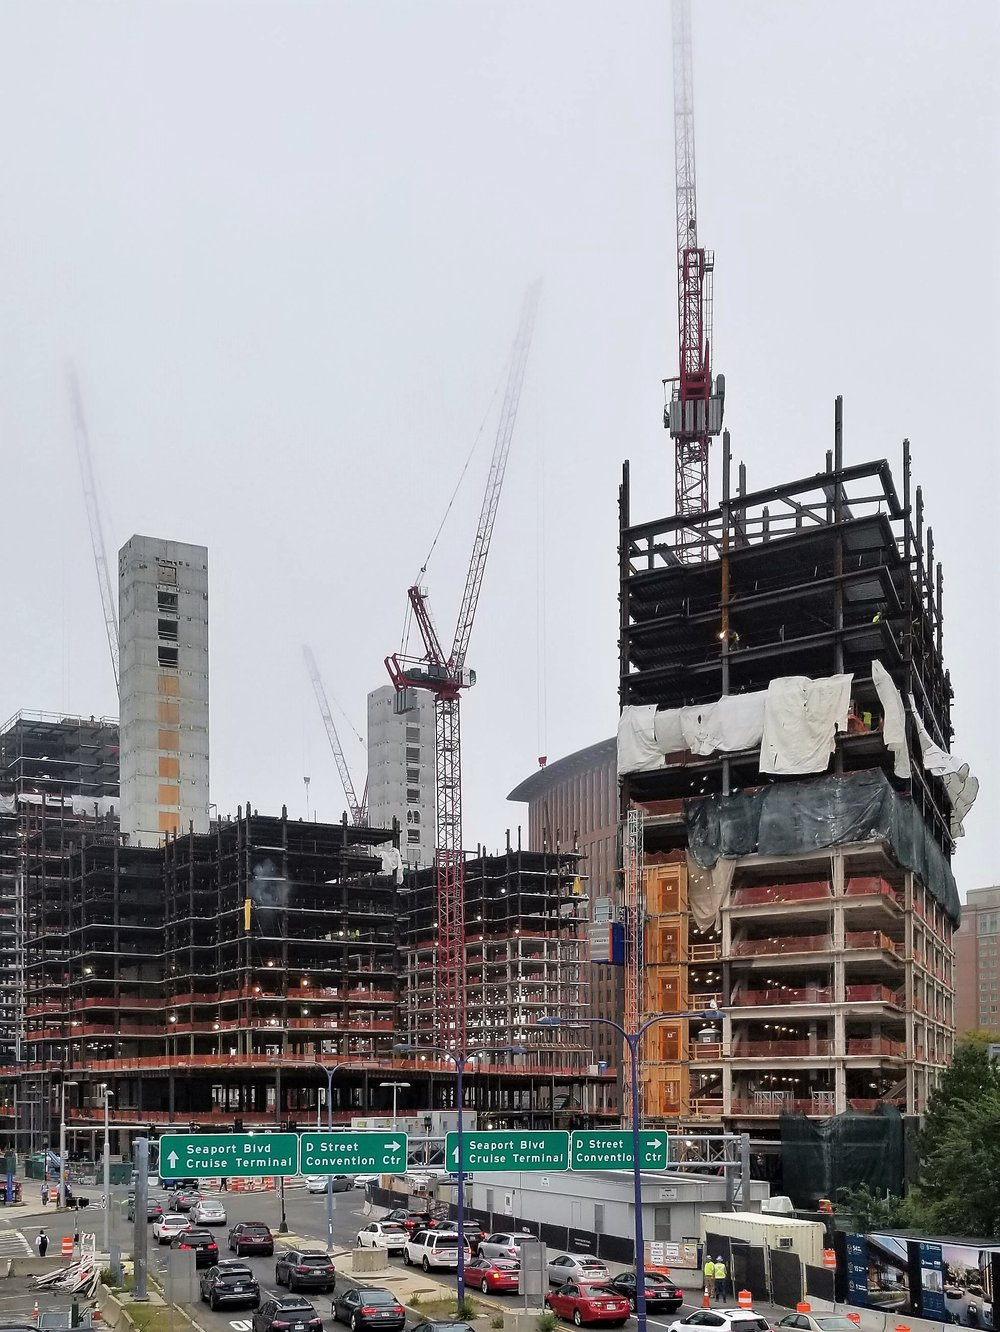 Boston's Seaport District Rapid Development